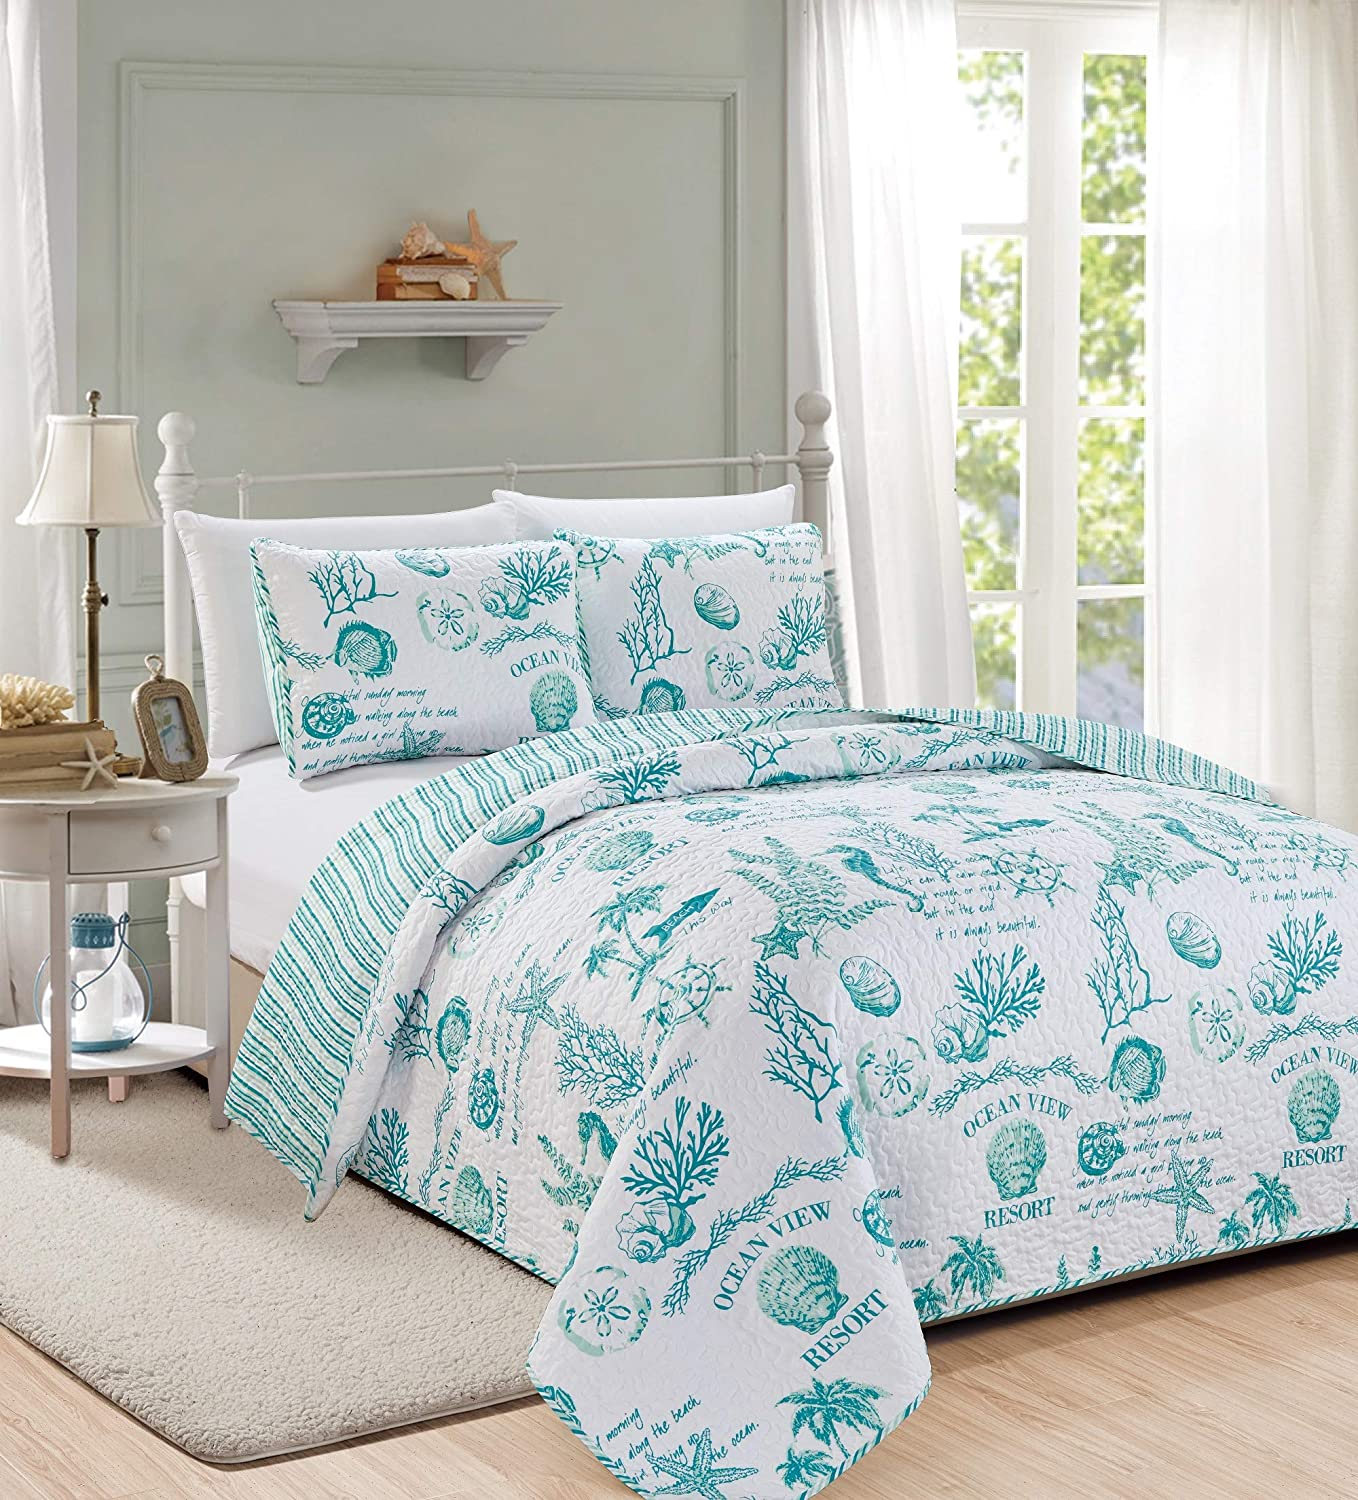 Great Bay Home 3 Piece Quilt Set with Shams. Soft All-Season Microfiber Bedspread Featuring Attractive Seascape Images. Machine Washable. The Catalina Collection Brand. (Full/Queen, Aqua)